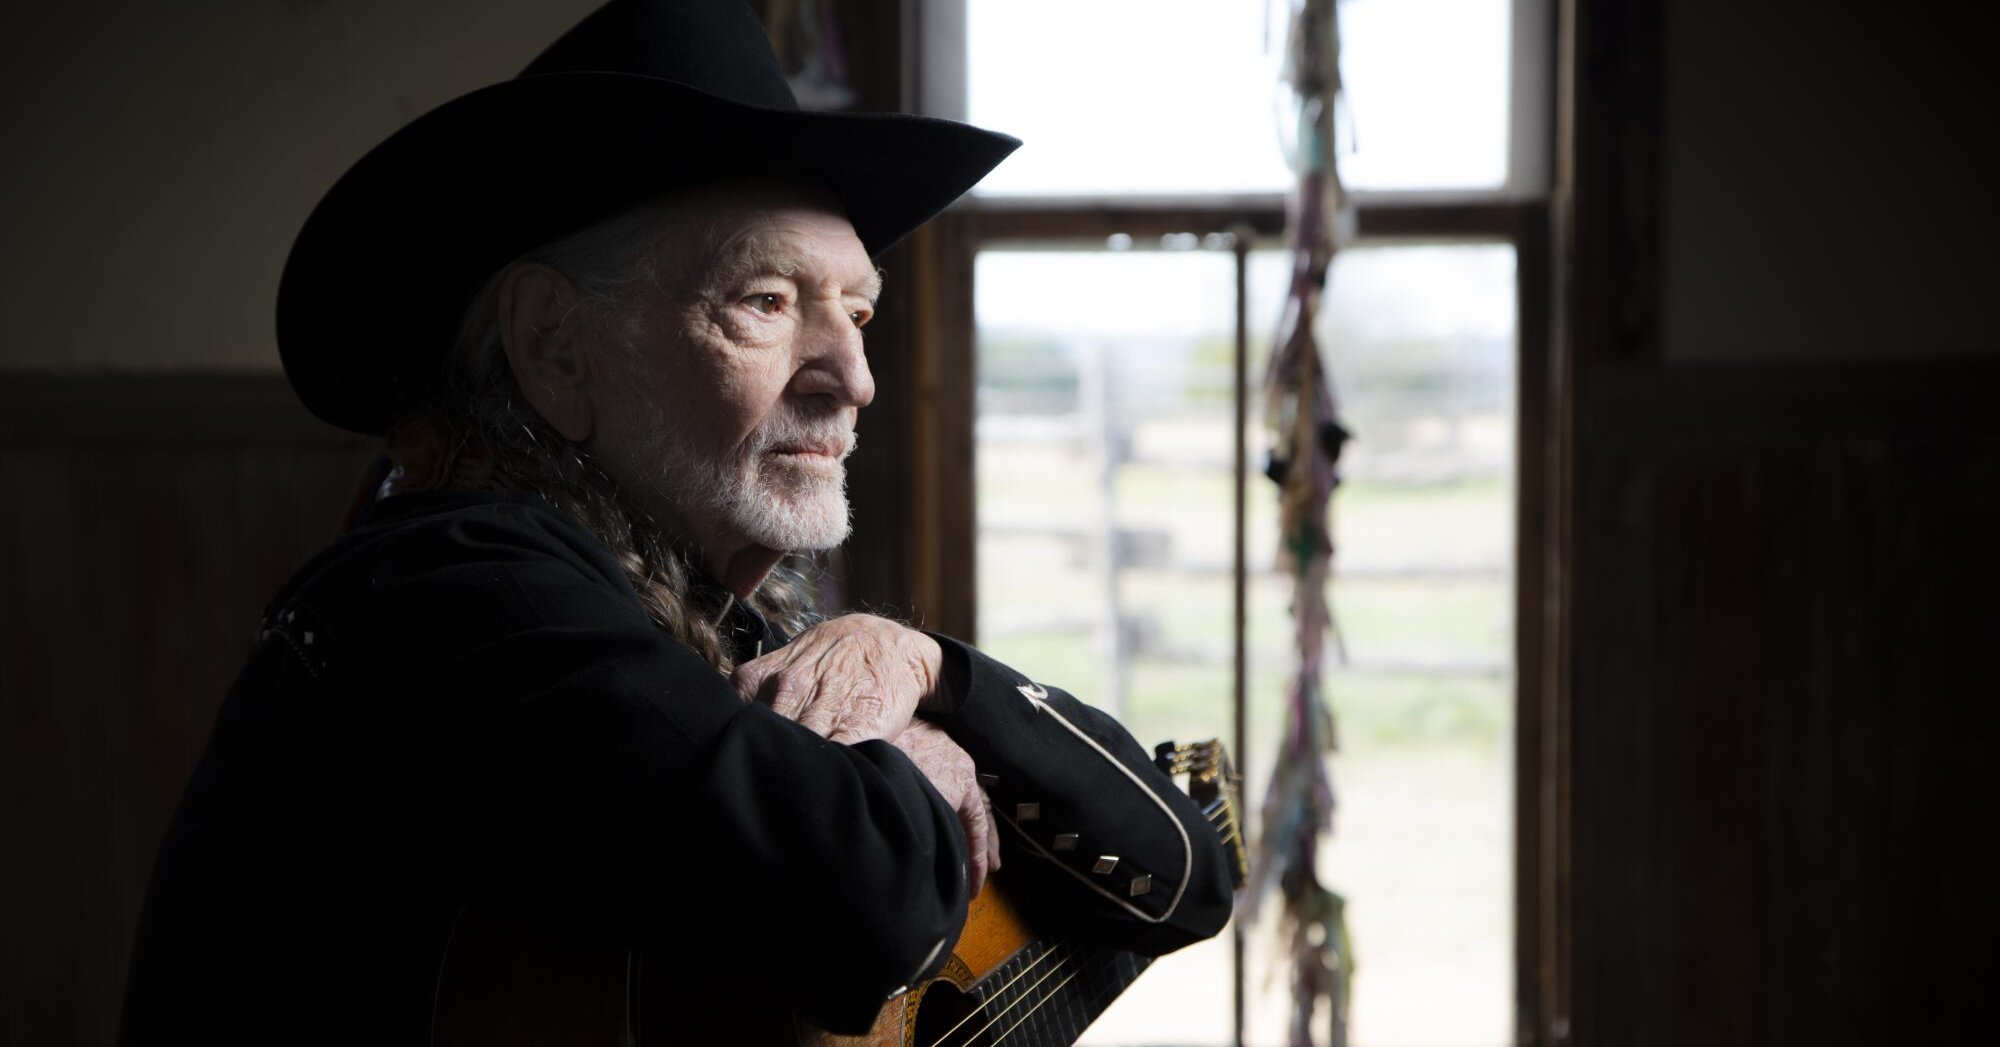 Willie Nelson on Staying Positive and Living His Best Life